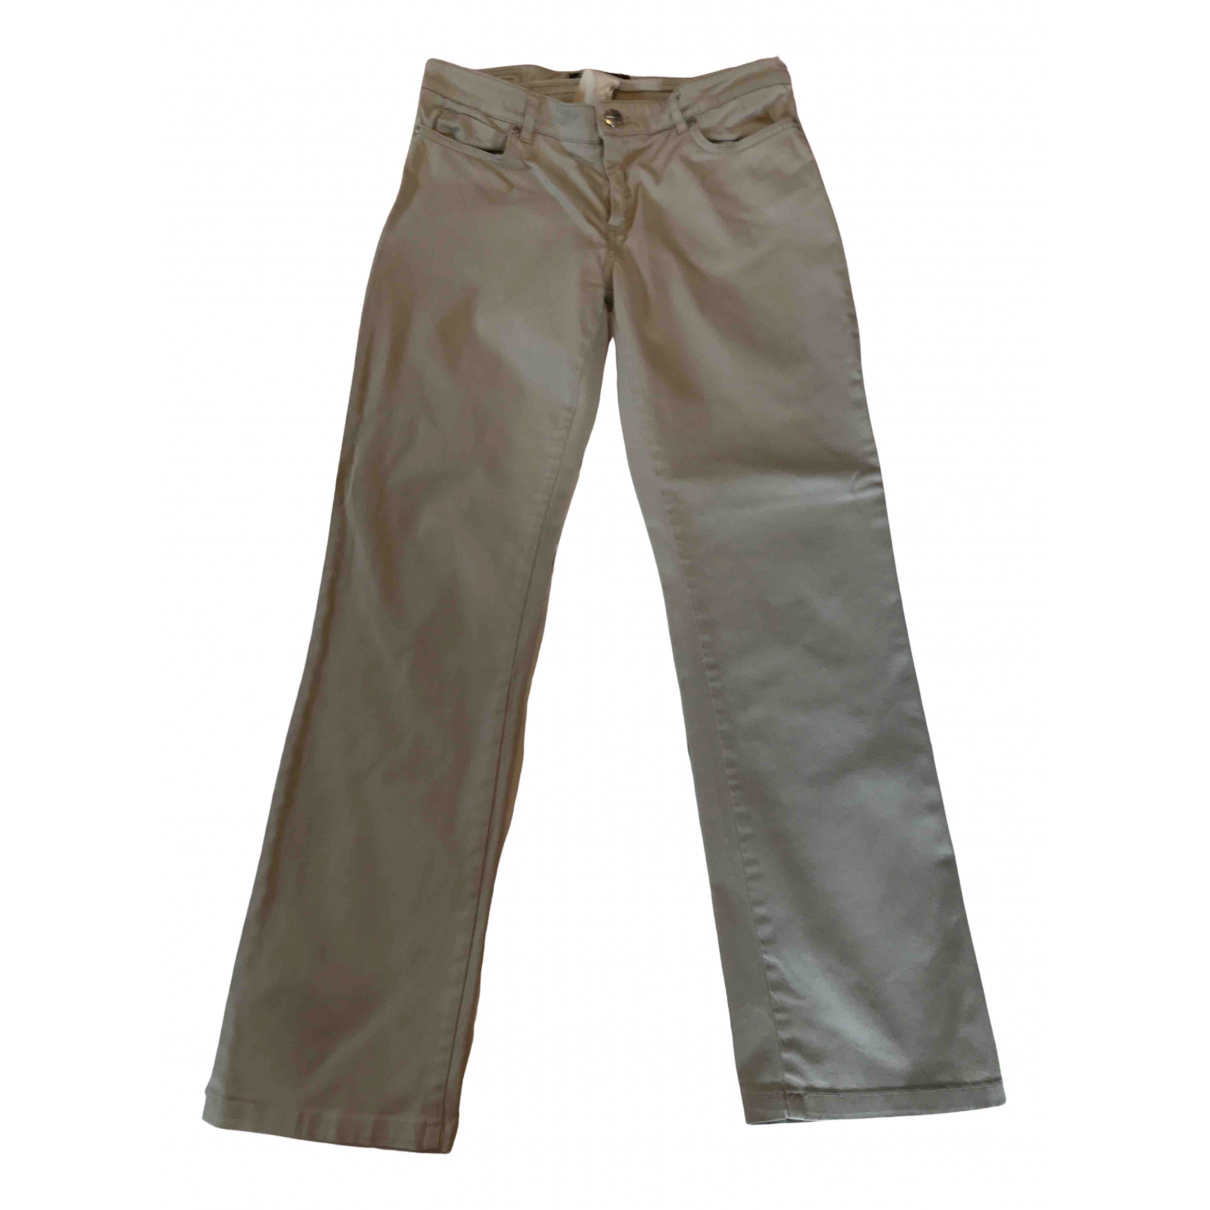 Max Mara Weekend N Beige Linen Trousers for Women 8 US